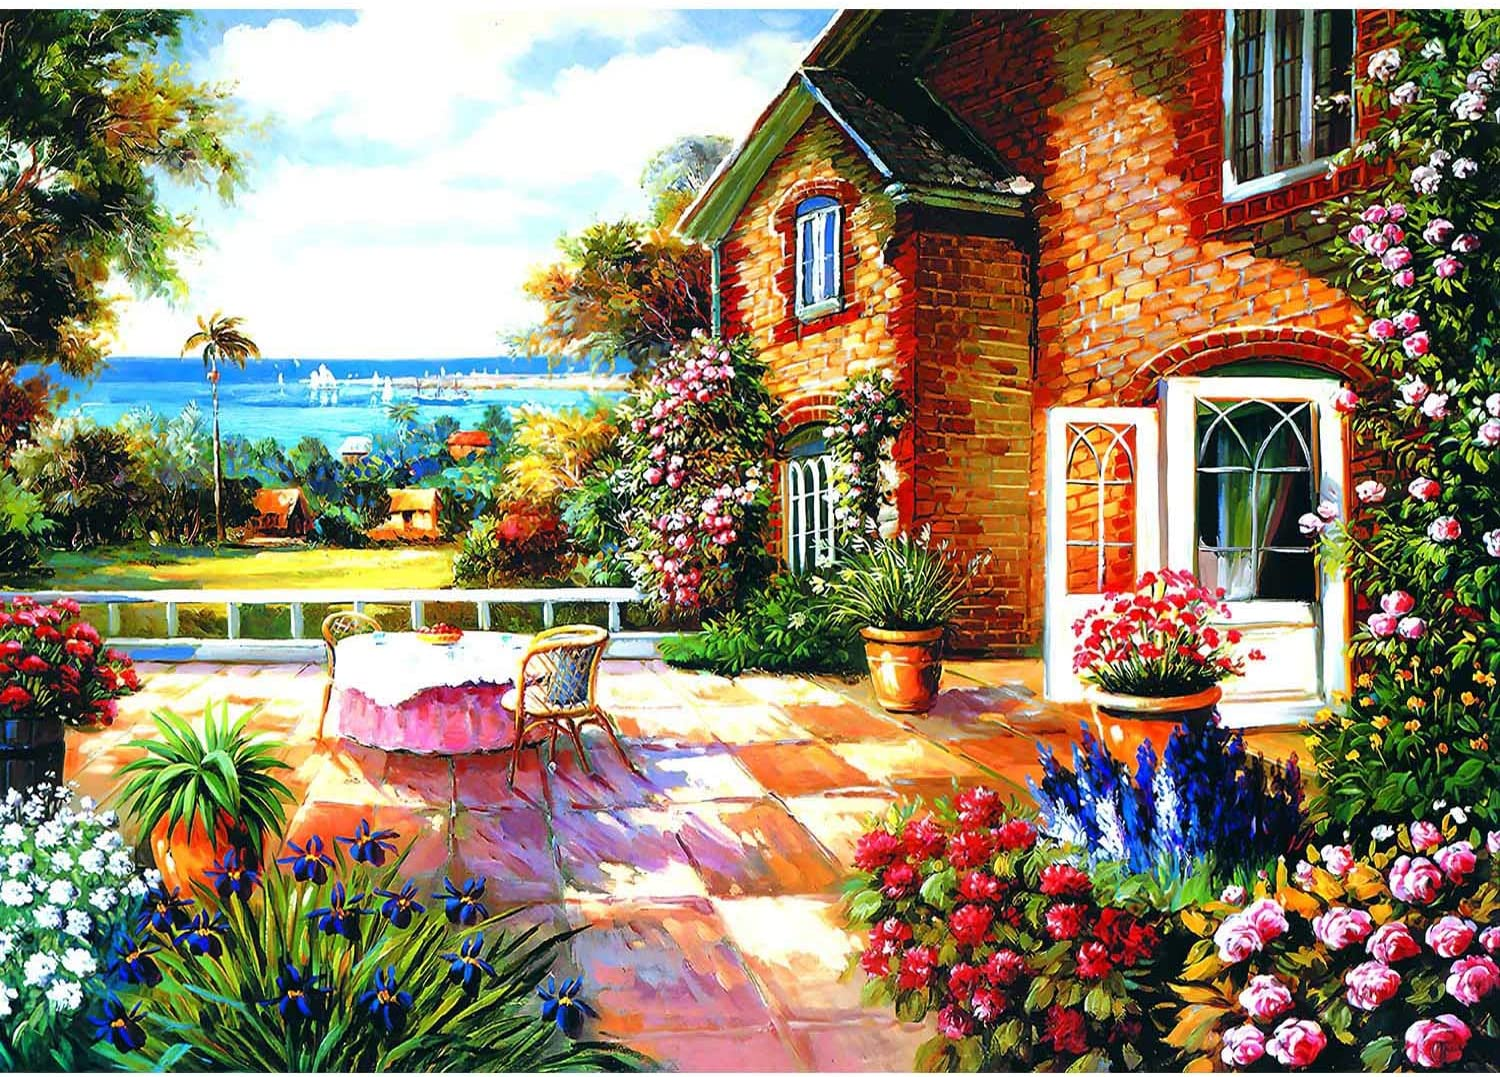 Puzzles for Adults 1000 Piece - Courtyard Garden - Jigsaw Puzzle for Adults Teens Puzzle Game Toy Gift